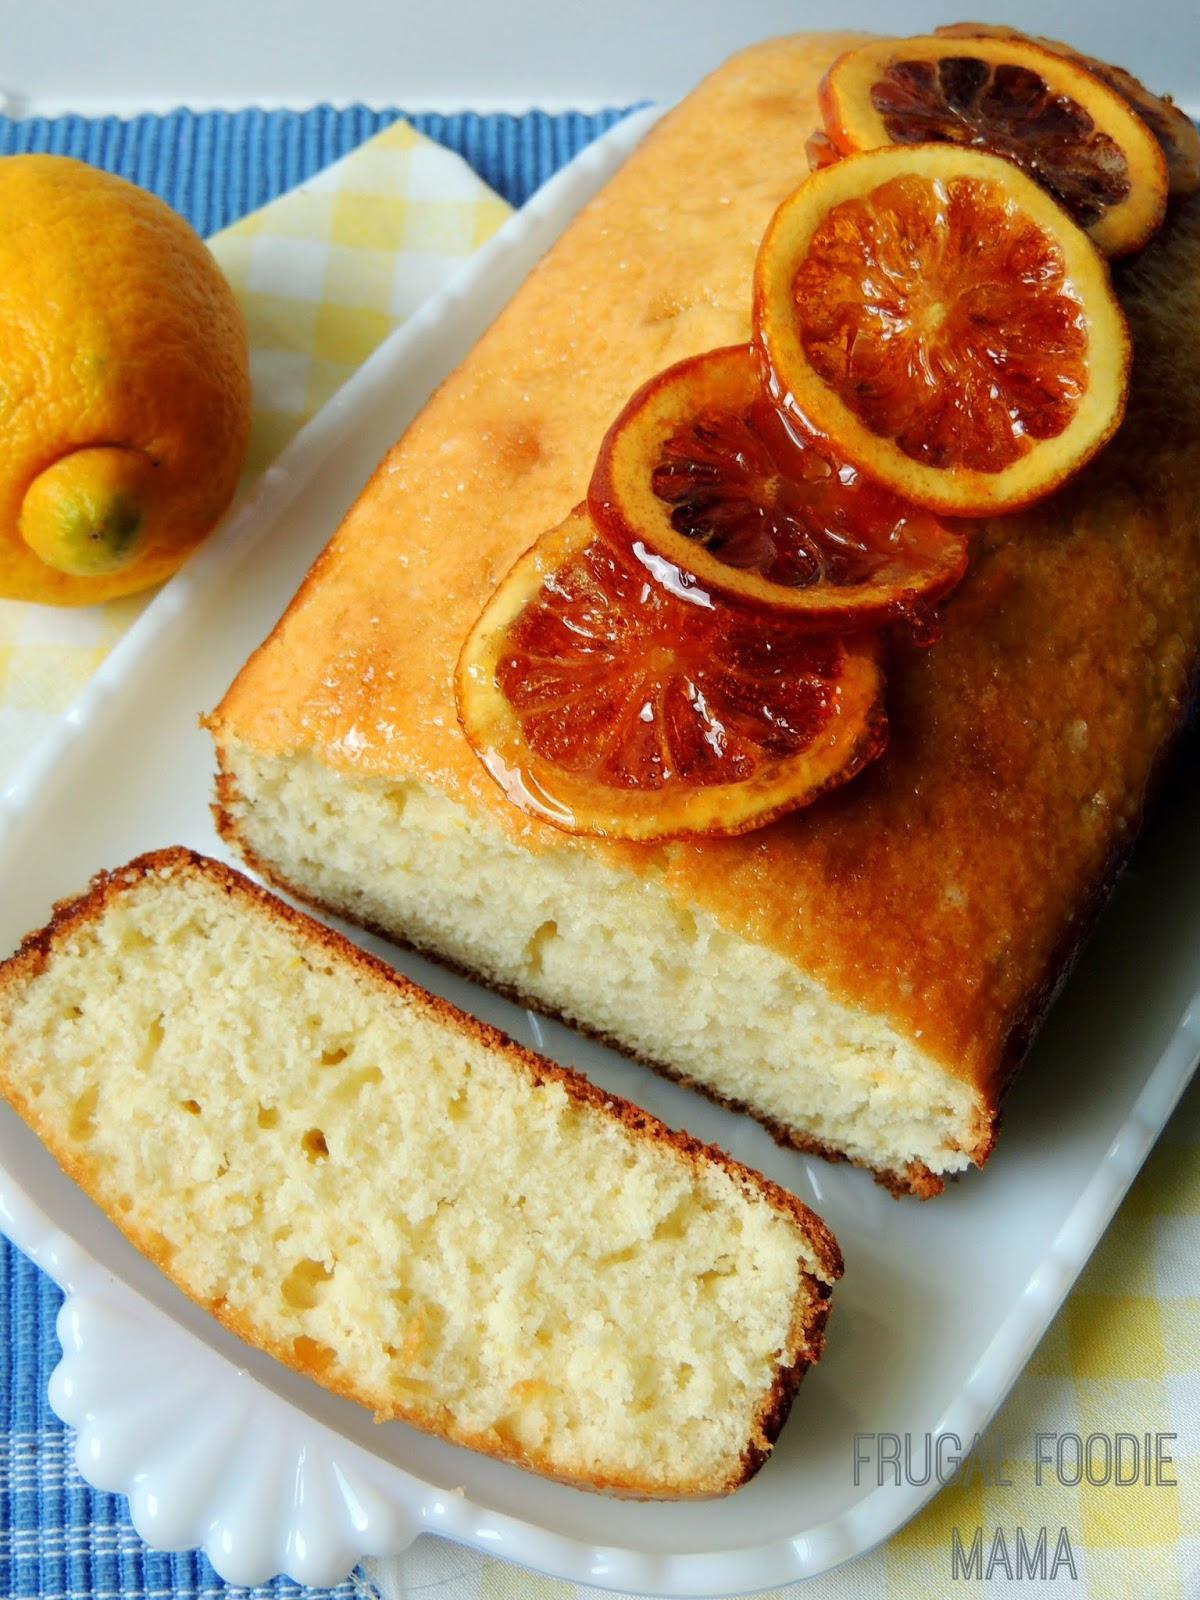 This Lemon Drop Bread with Candied Lemon Slices truly lives up to it's namesake. Moist, sweet bread with a hint of lemony tartness drizzled in a lemon-sugar glaze and topped with homemade candied lemon slices.